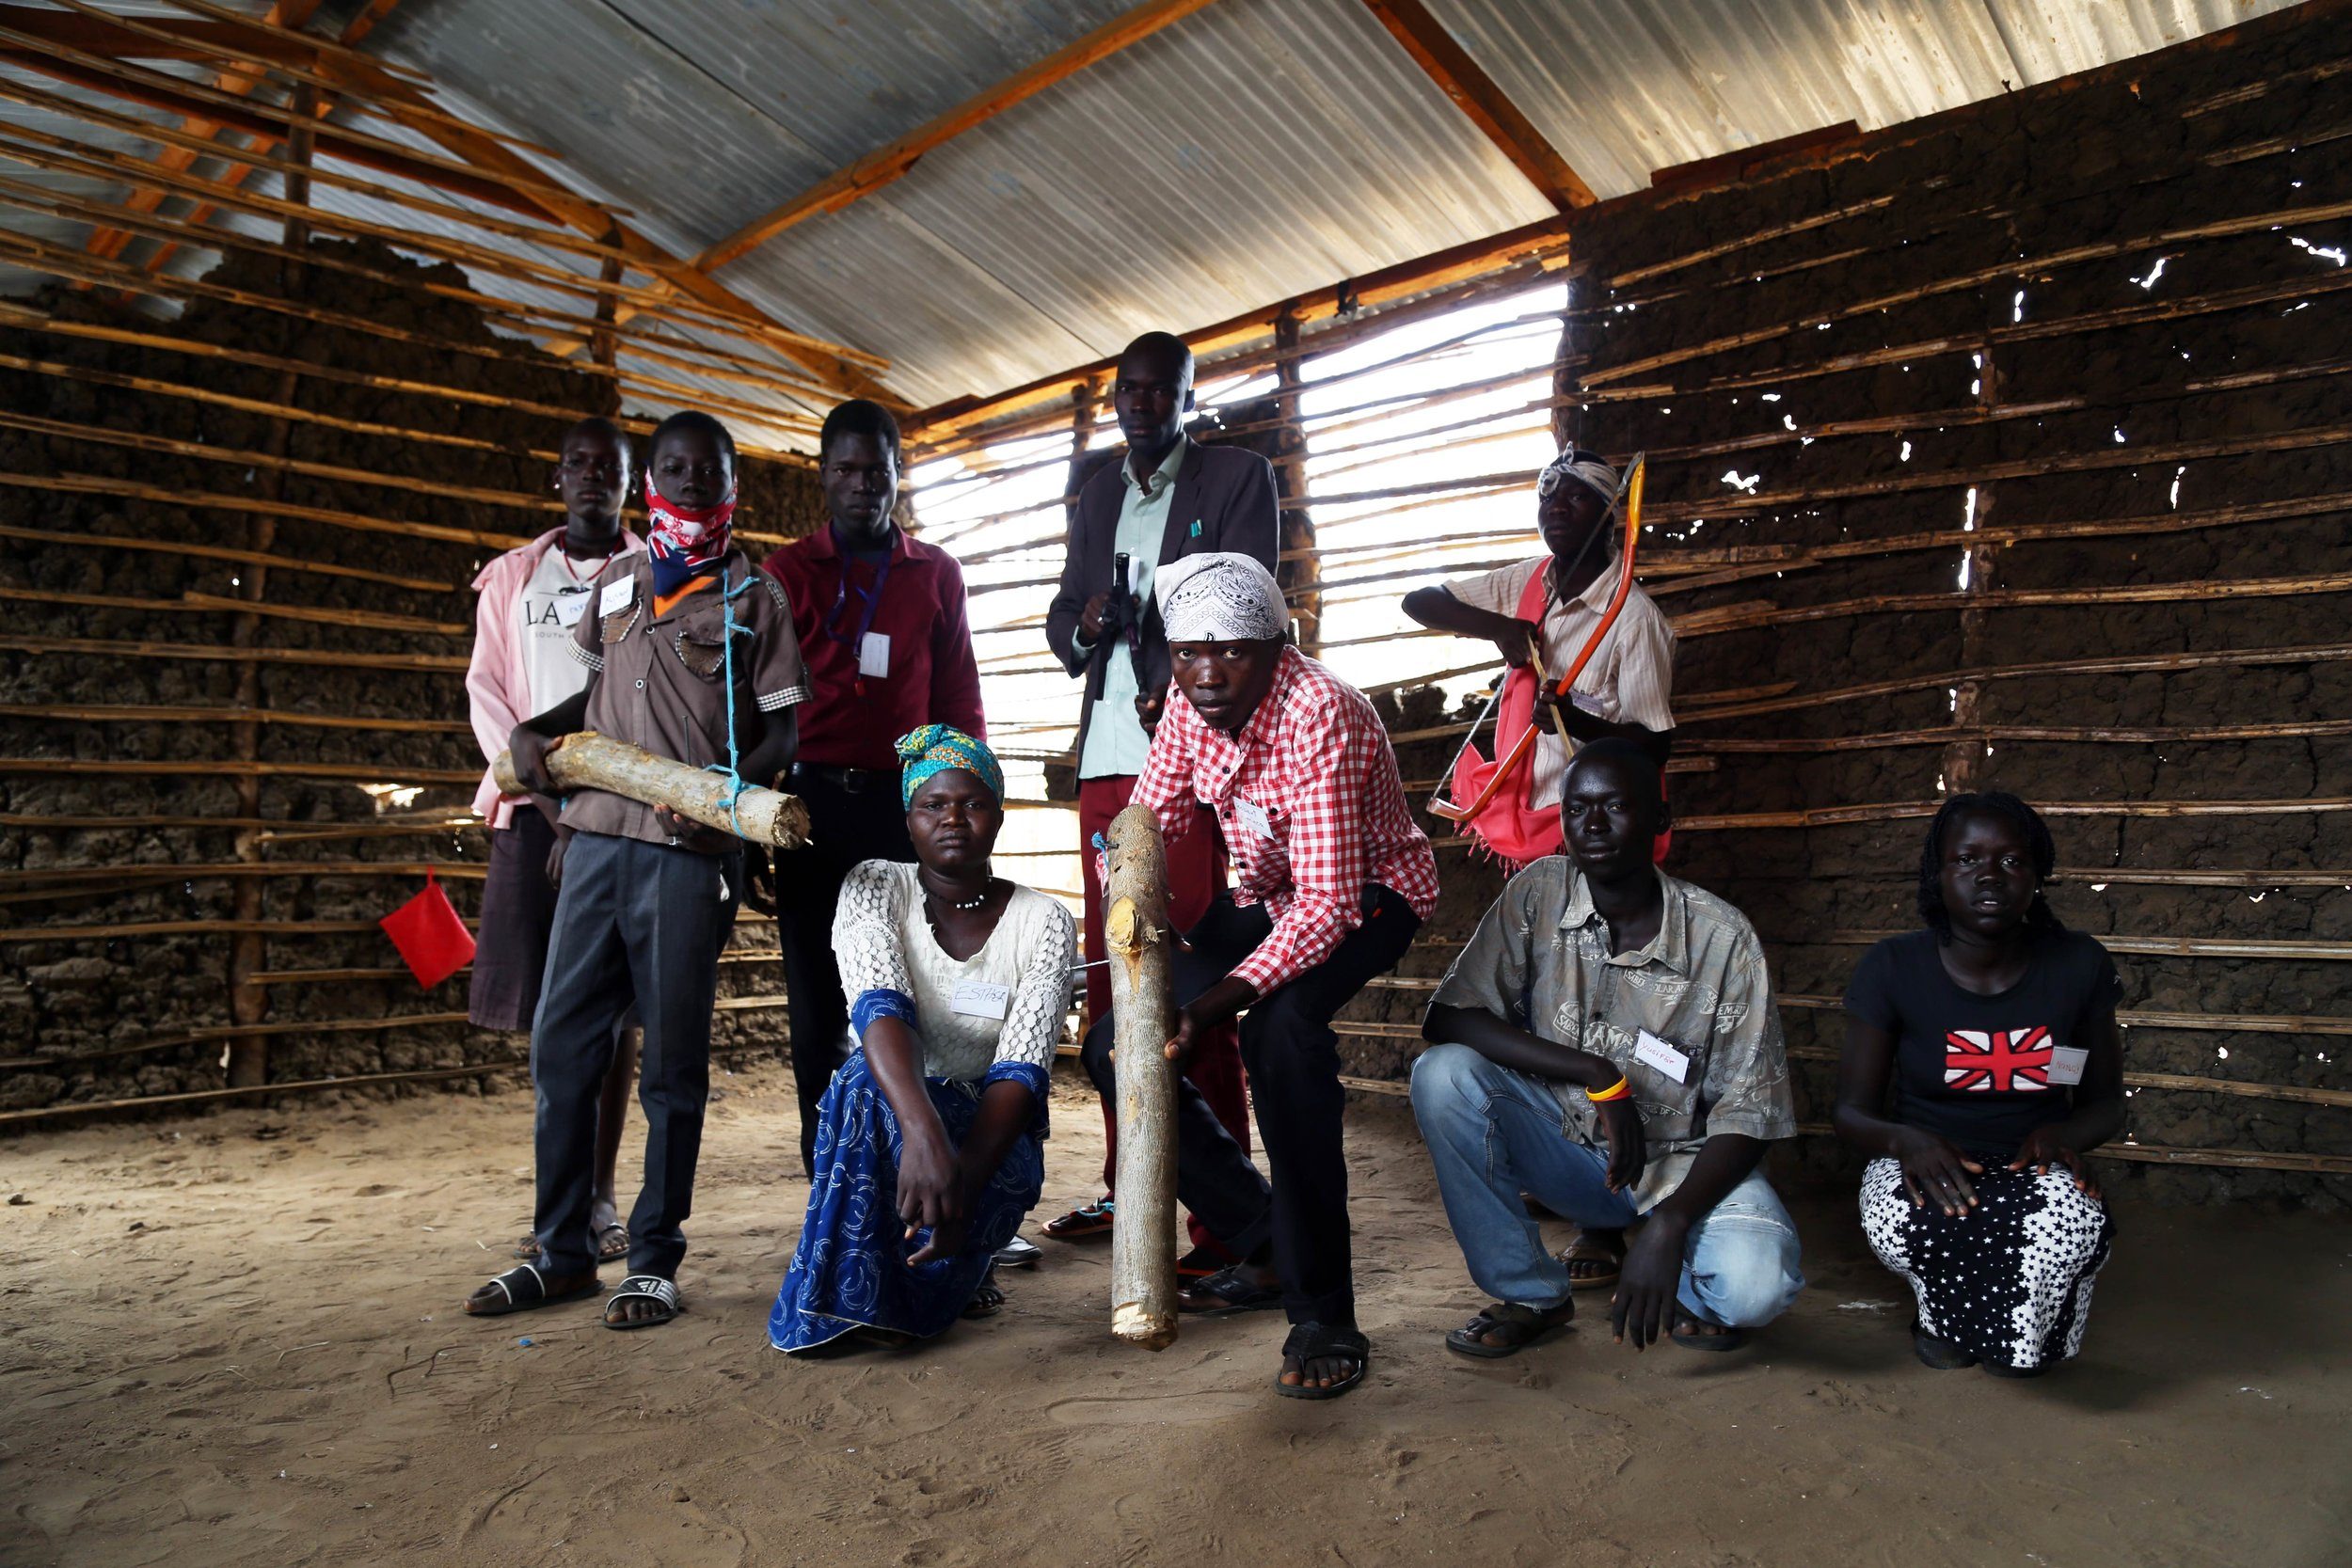 We shall have peace - Inside the world's youngest nation of South Sudan that was born from a long history of conflict, join the journeys of three people who are trying to heal their traumas and rebuild their futures.